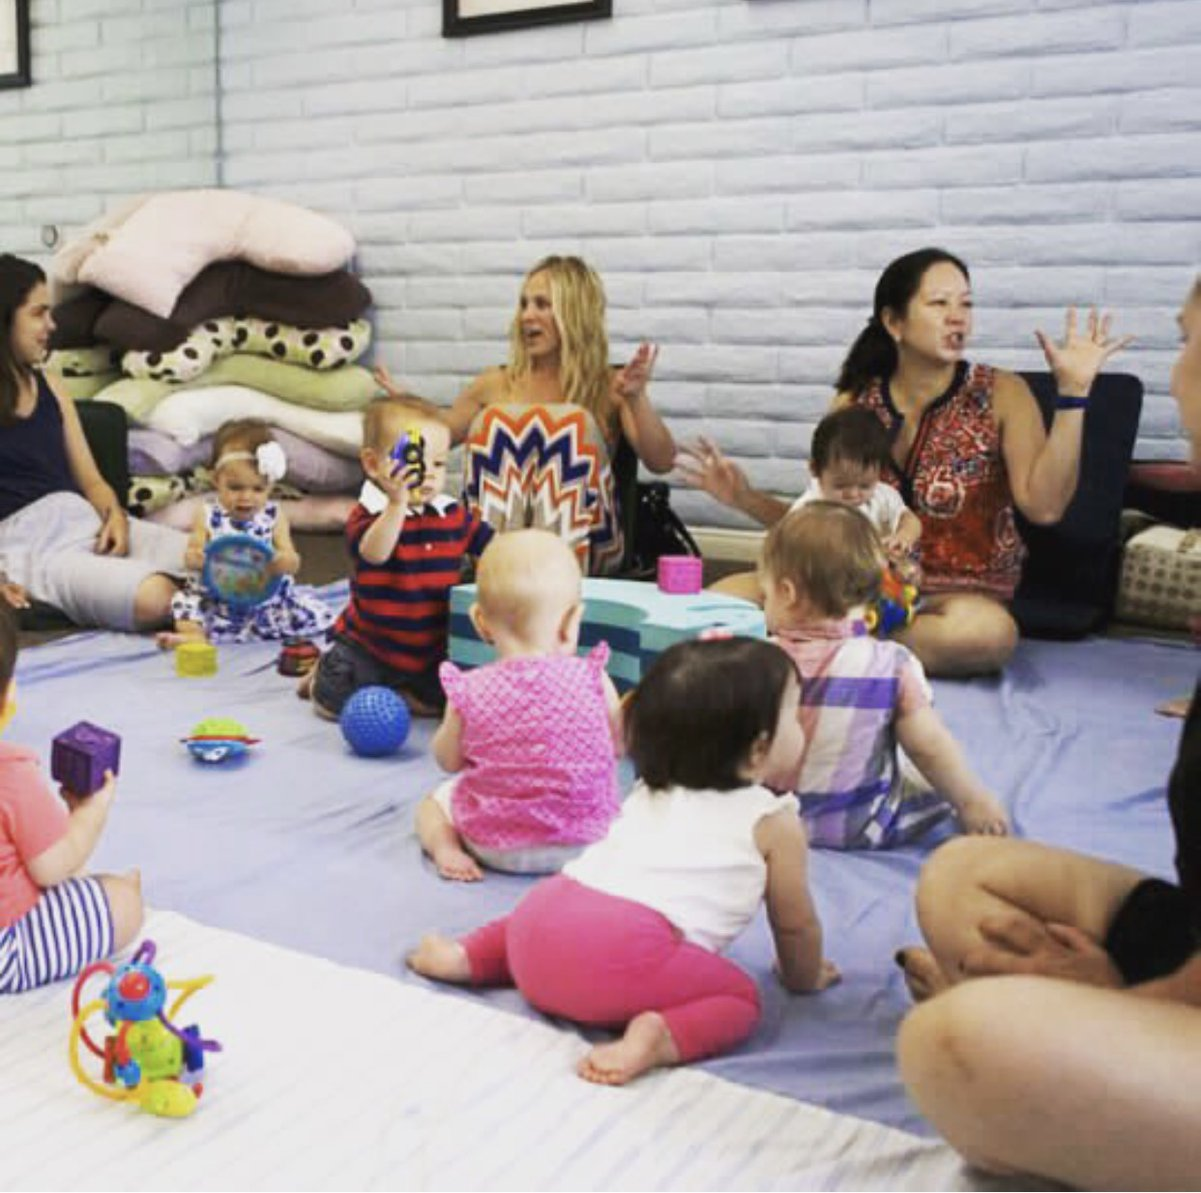 The 10 Best Mommy And Me Classes In L a  - Care com